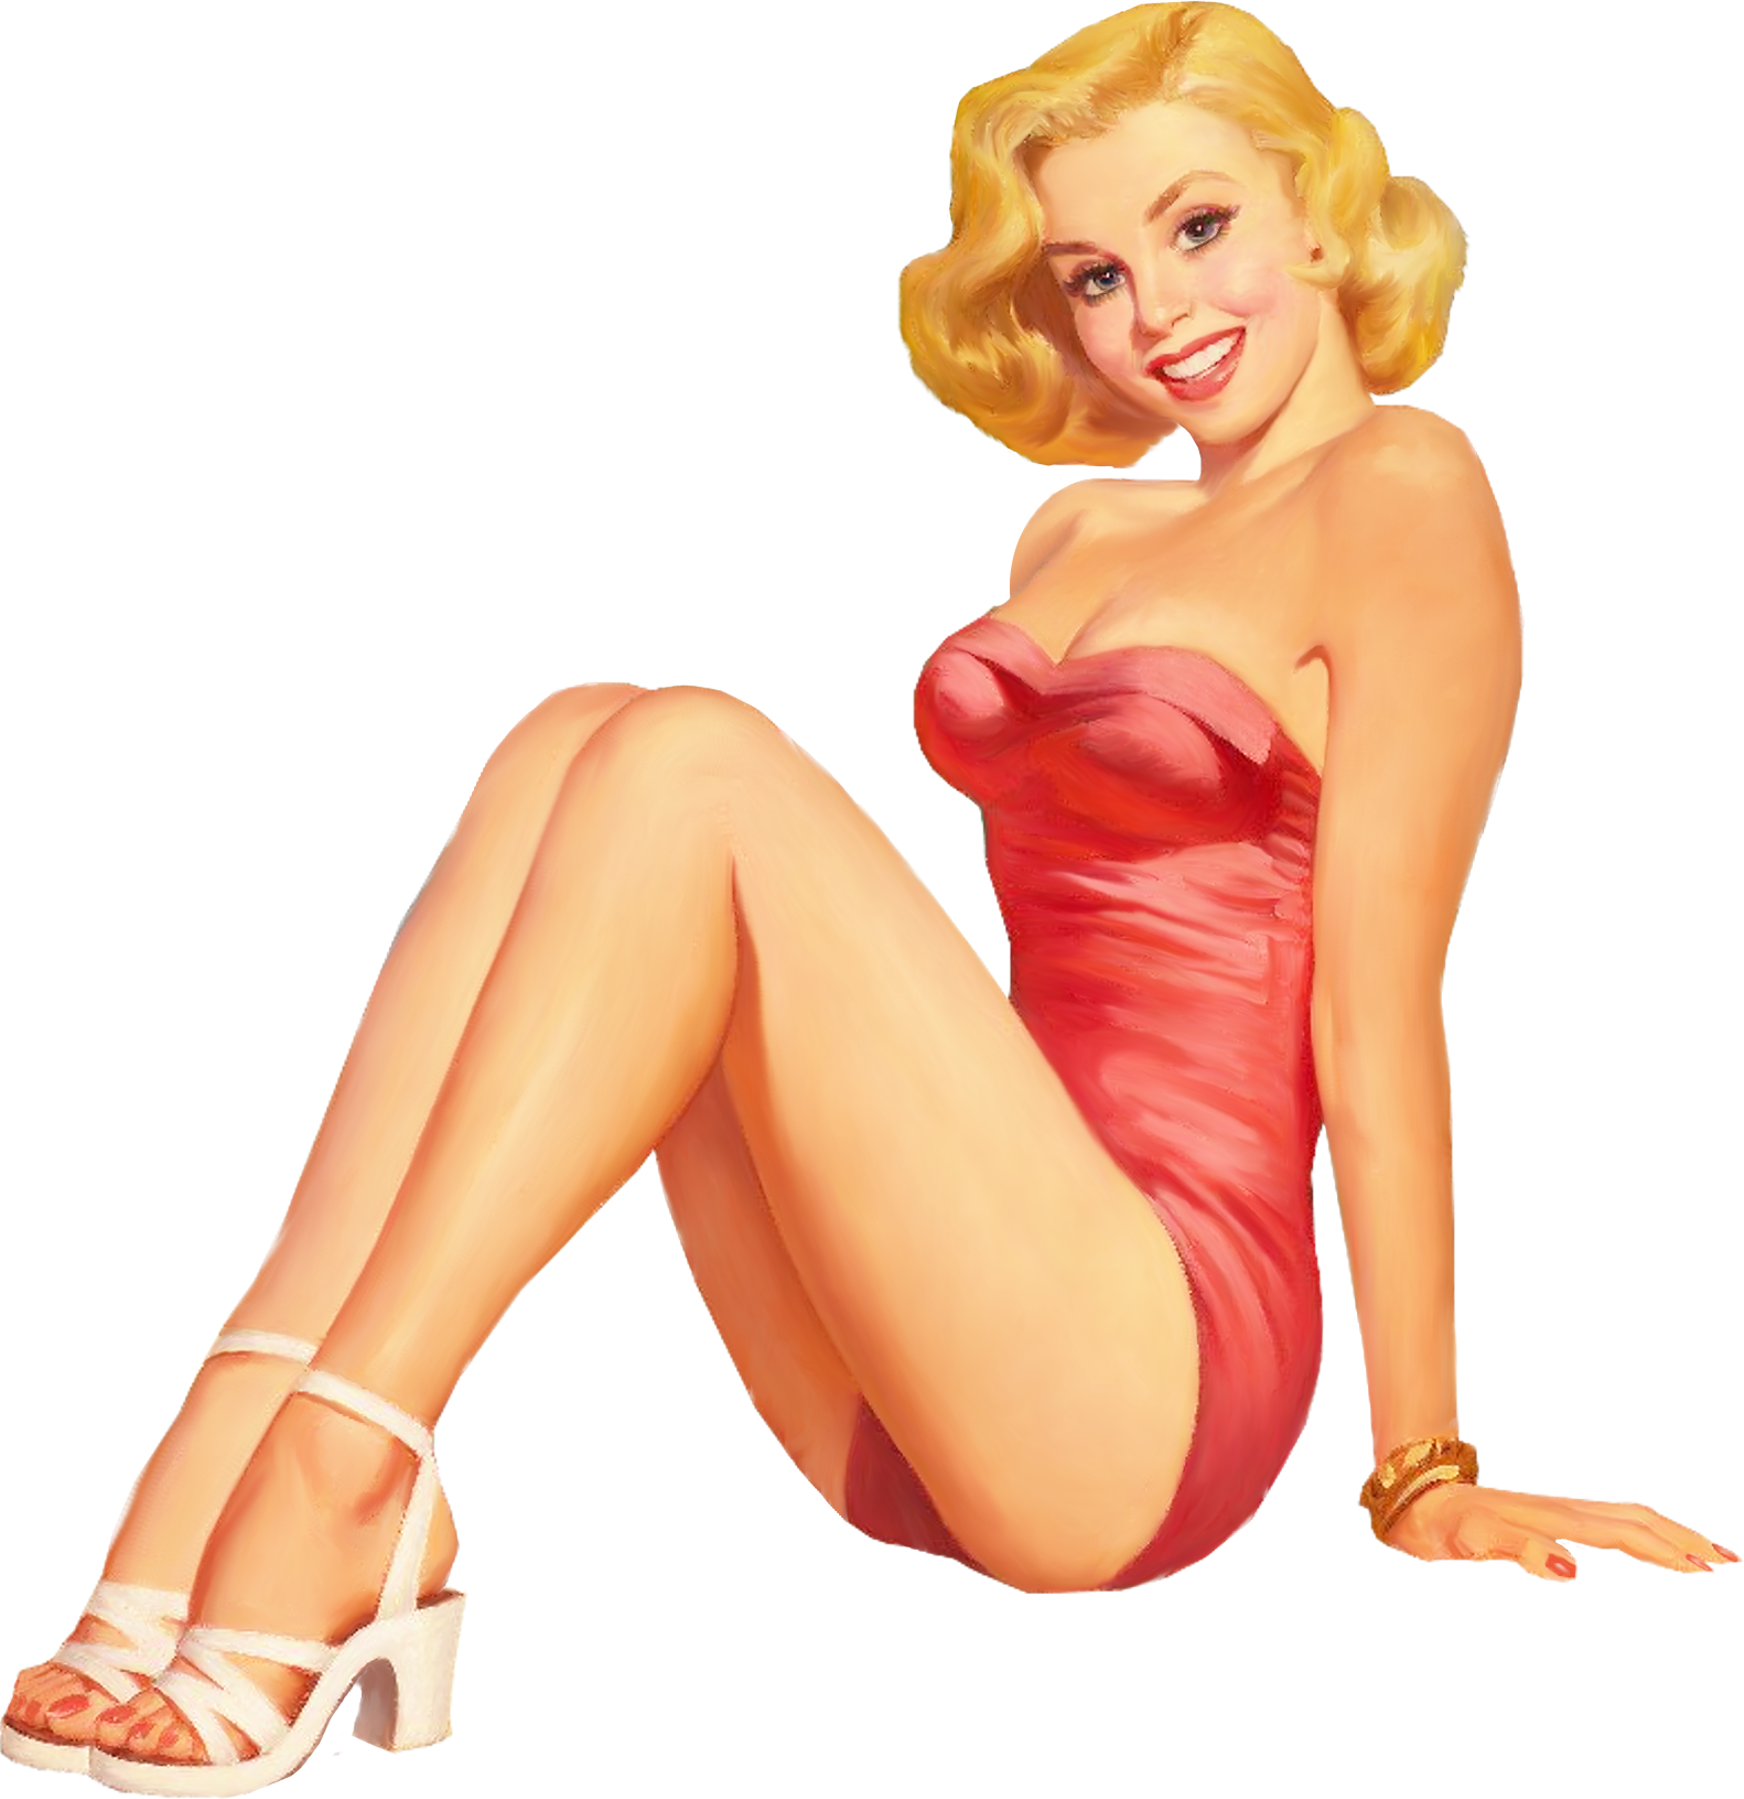 Pinup In One Piece W 3awhite Shoes Png Classic Pin Up